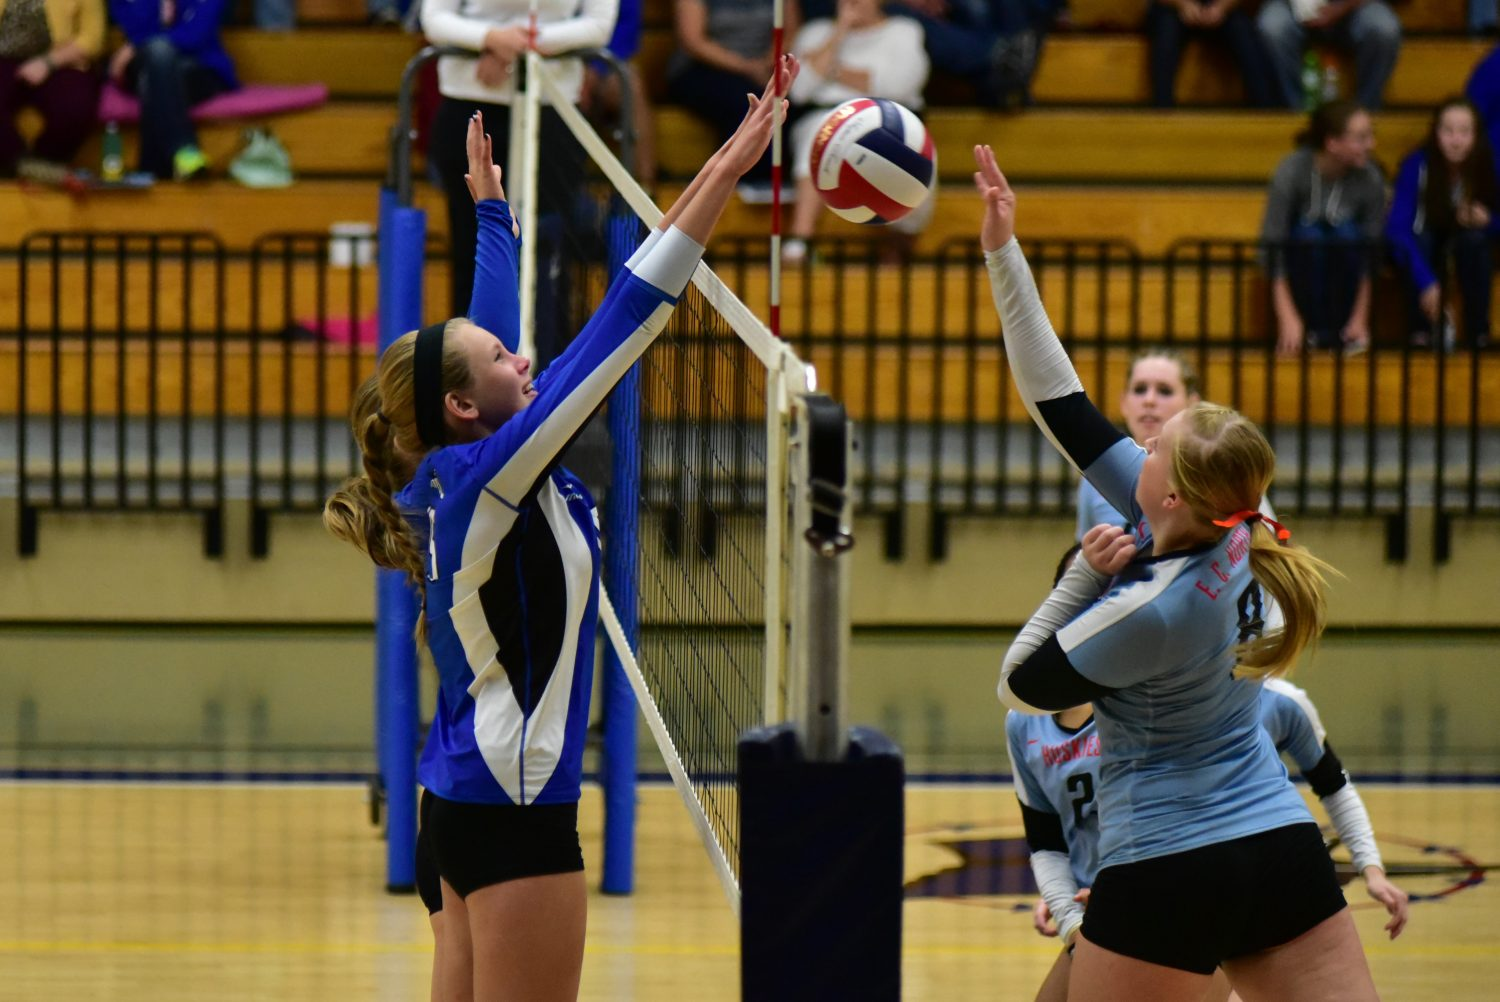 The Merrill girls volleyball team made it to the sectional finals in 2015.